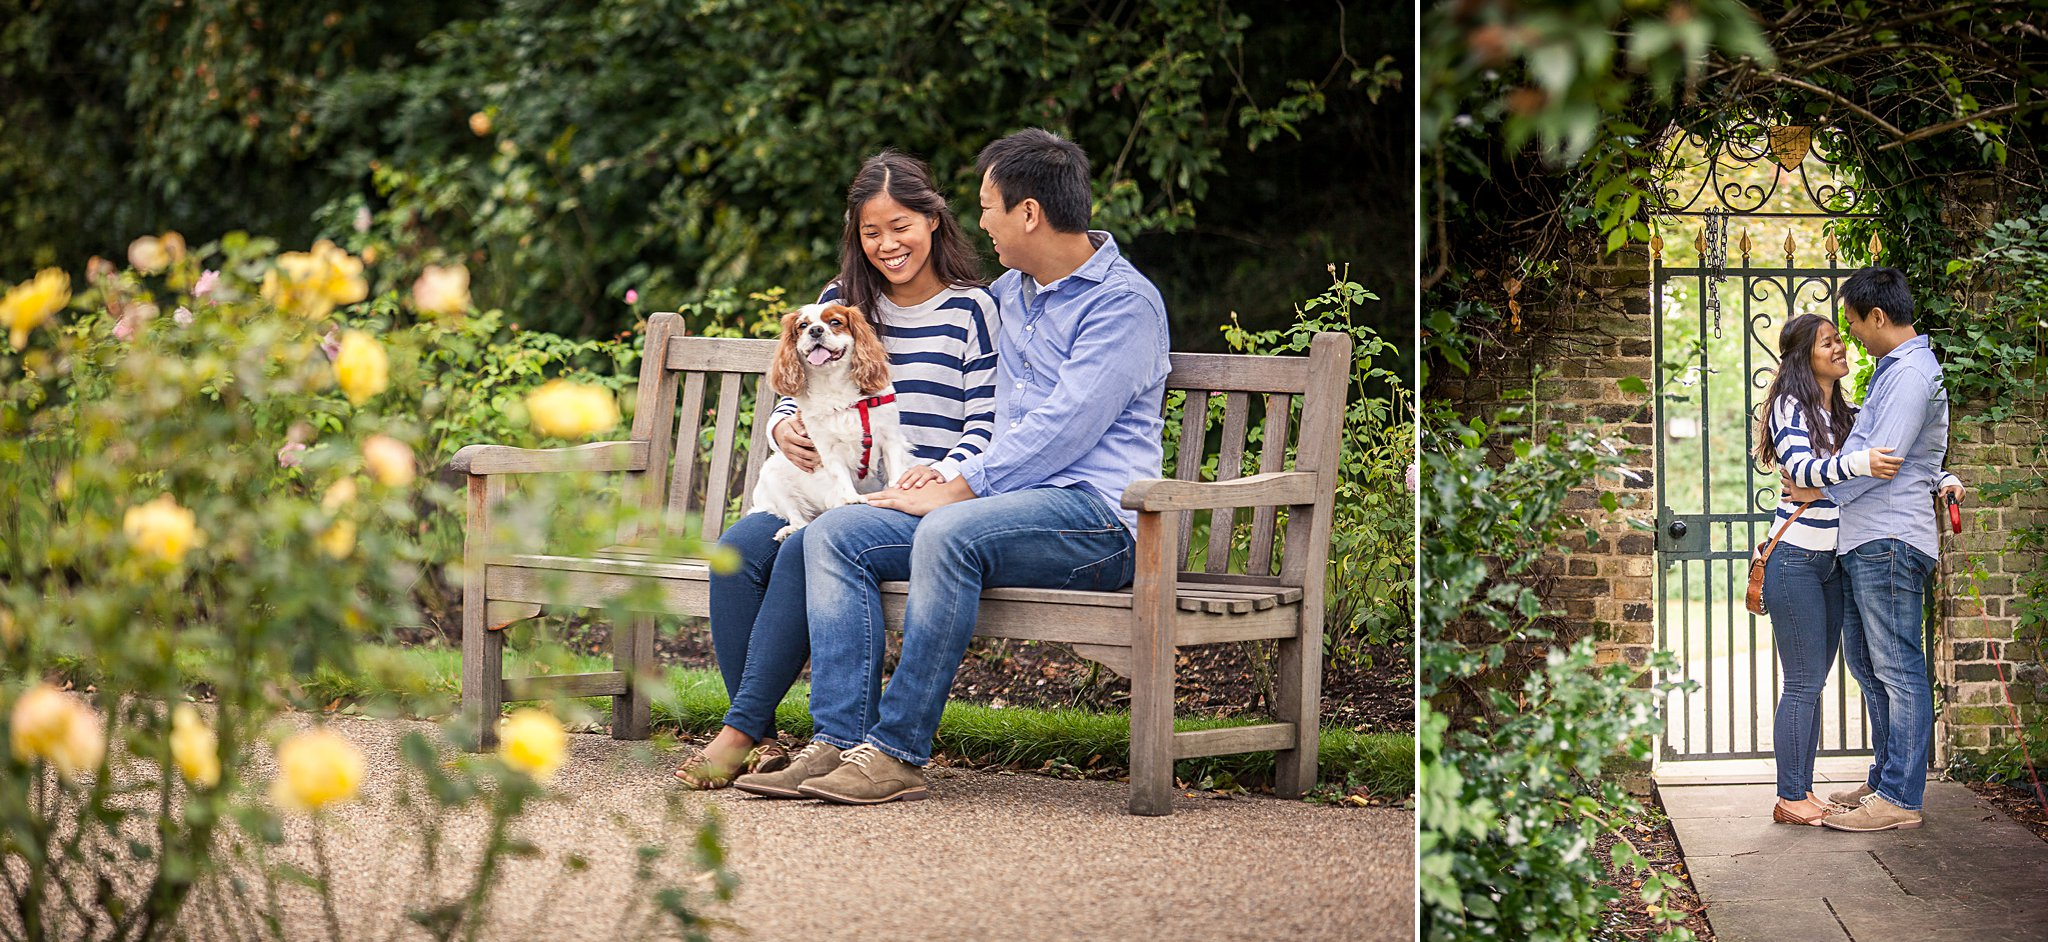 Couple portraits in garden